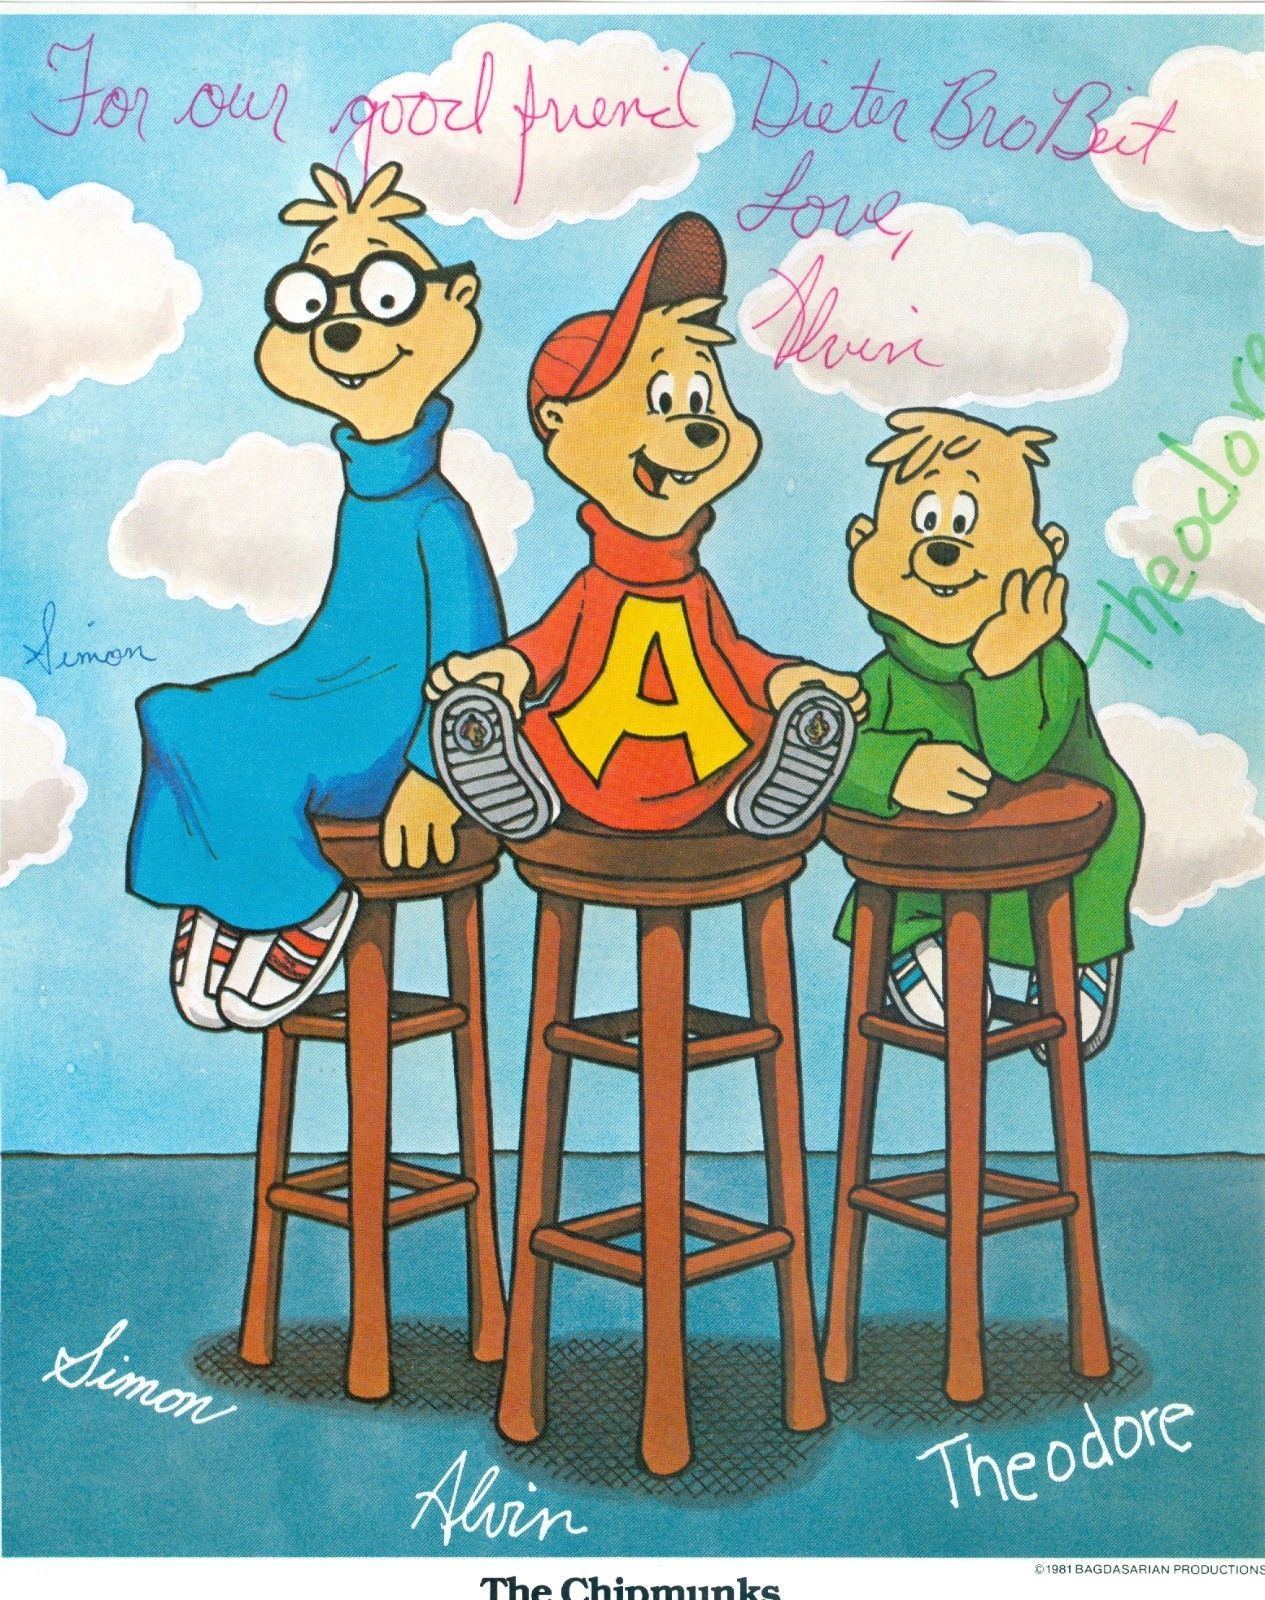 The Chipmunks C Bagdasarian Productions 1981 With Images